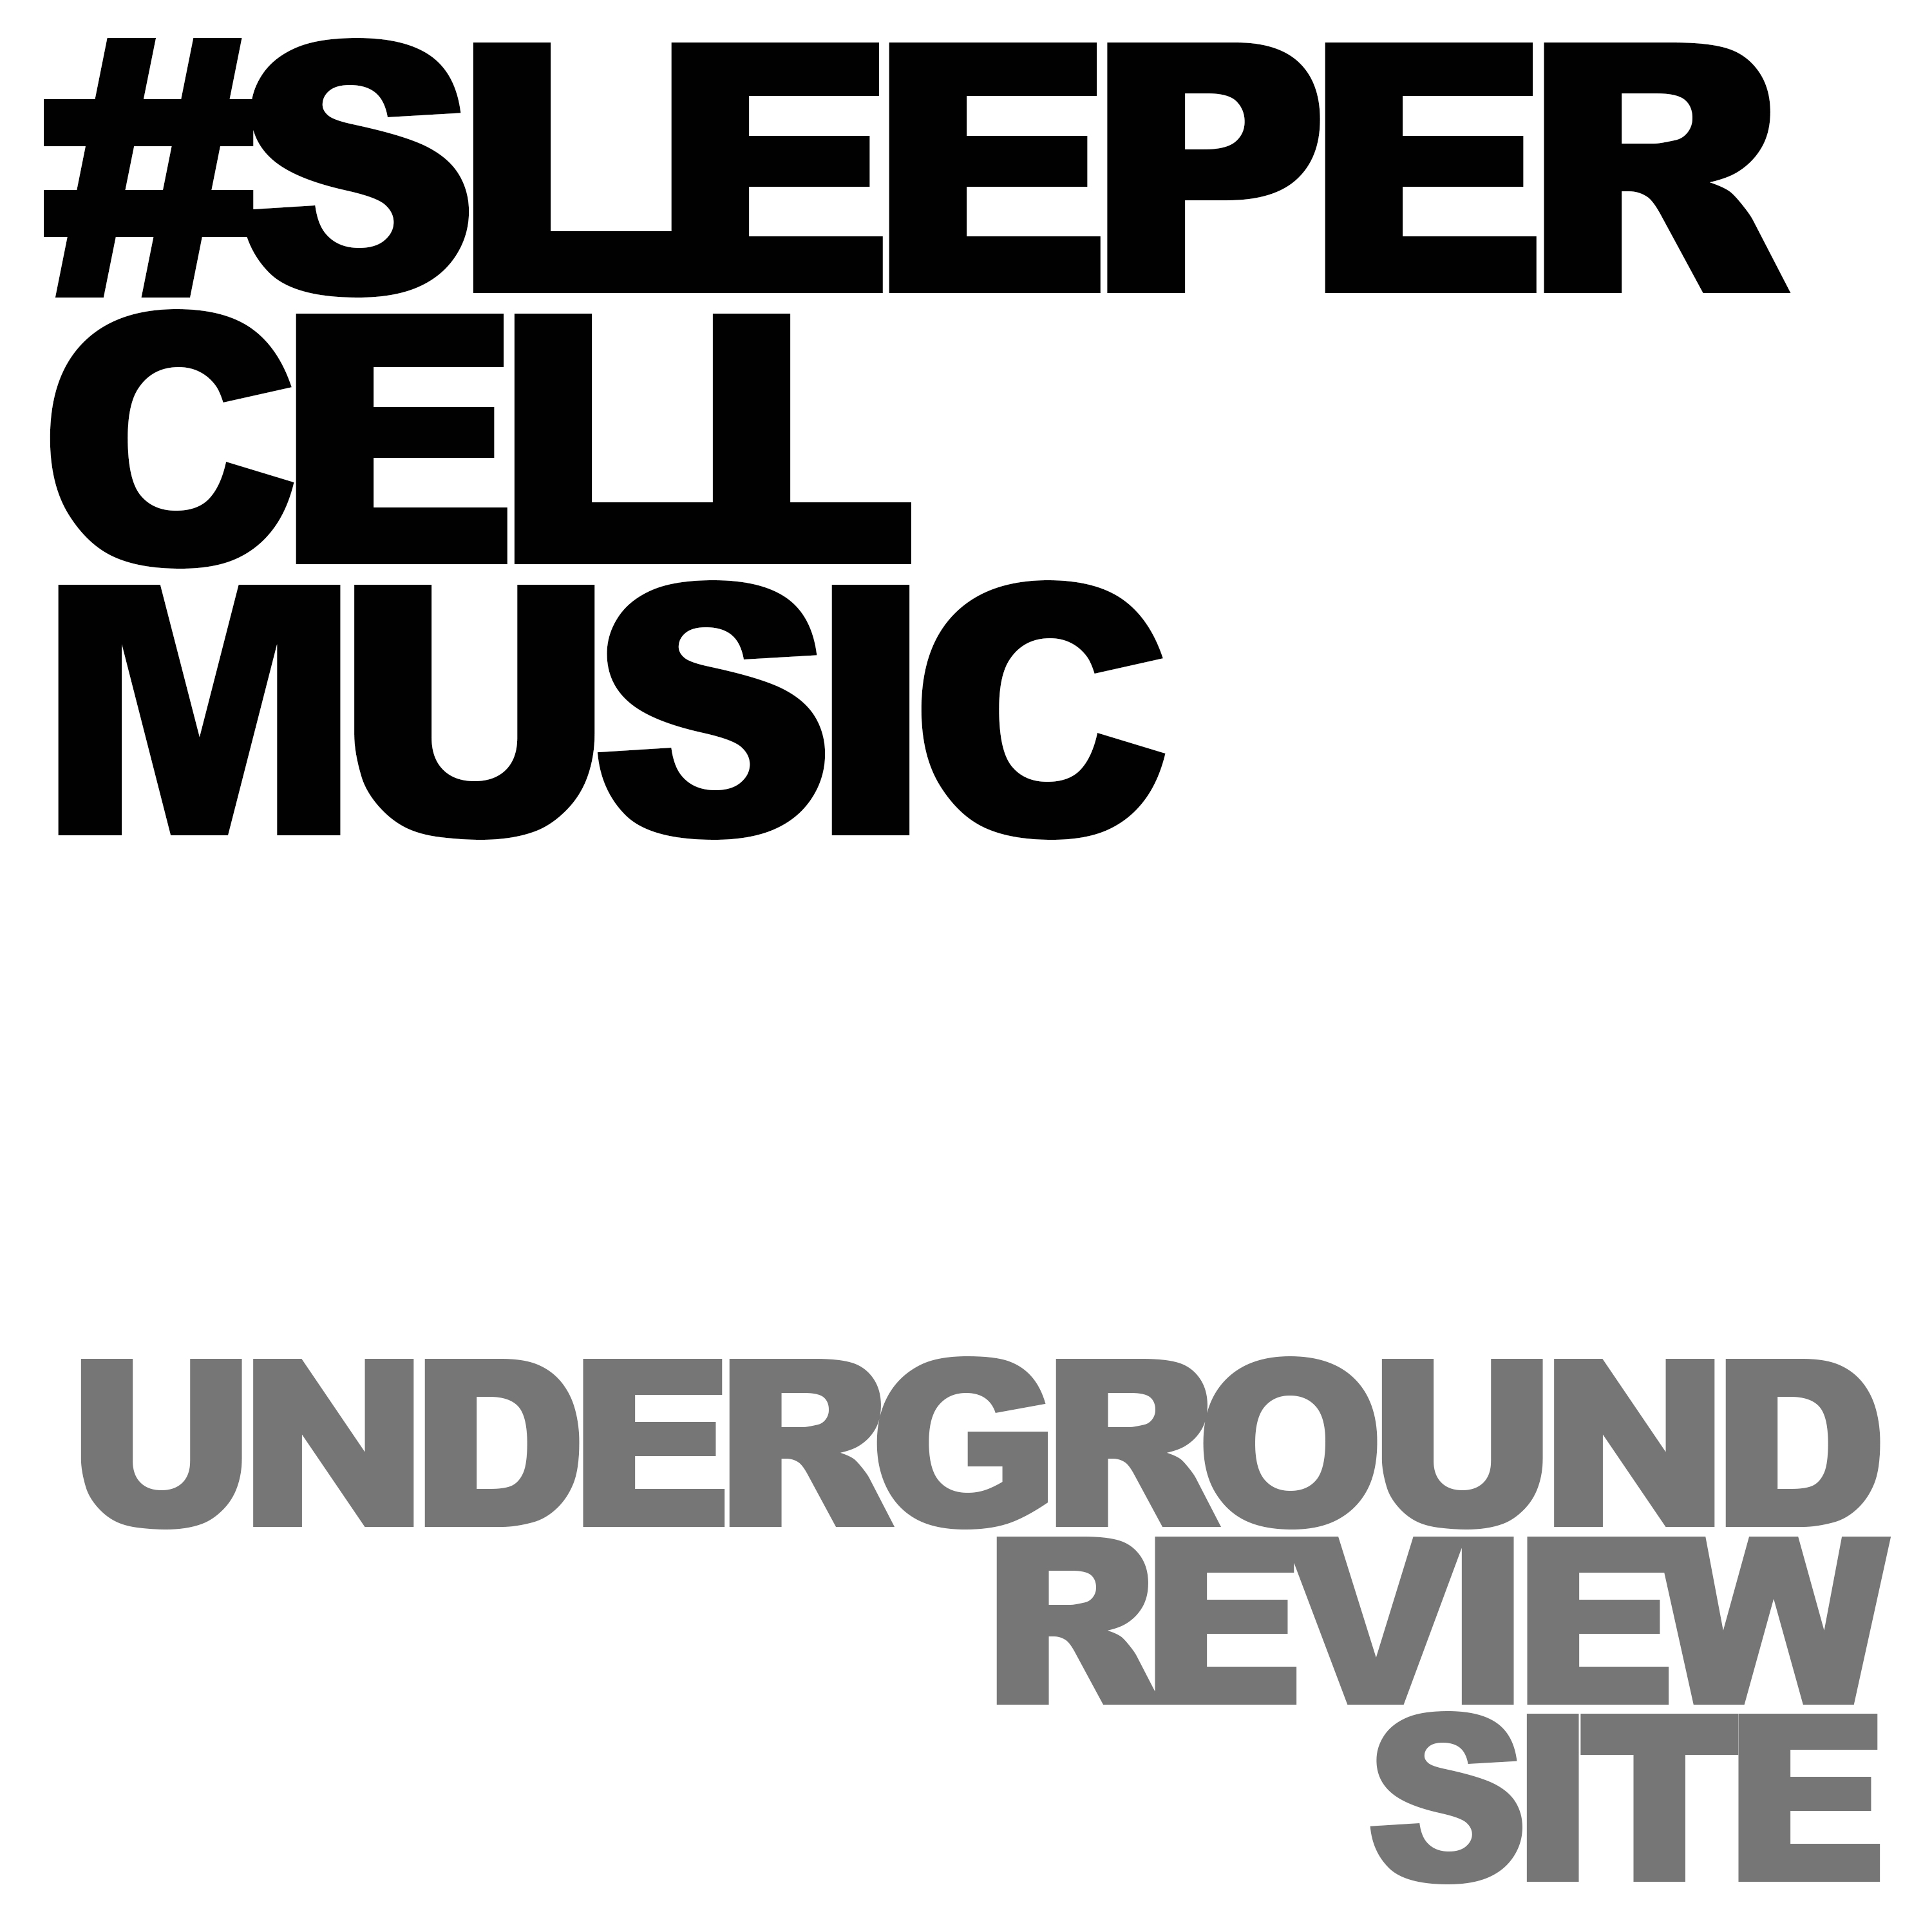 Sleepercellmusic